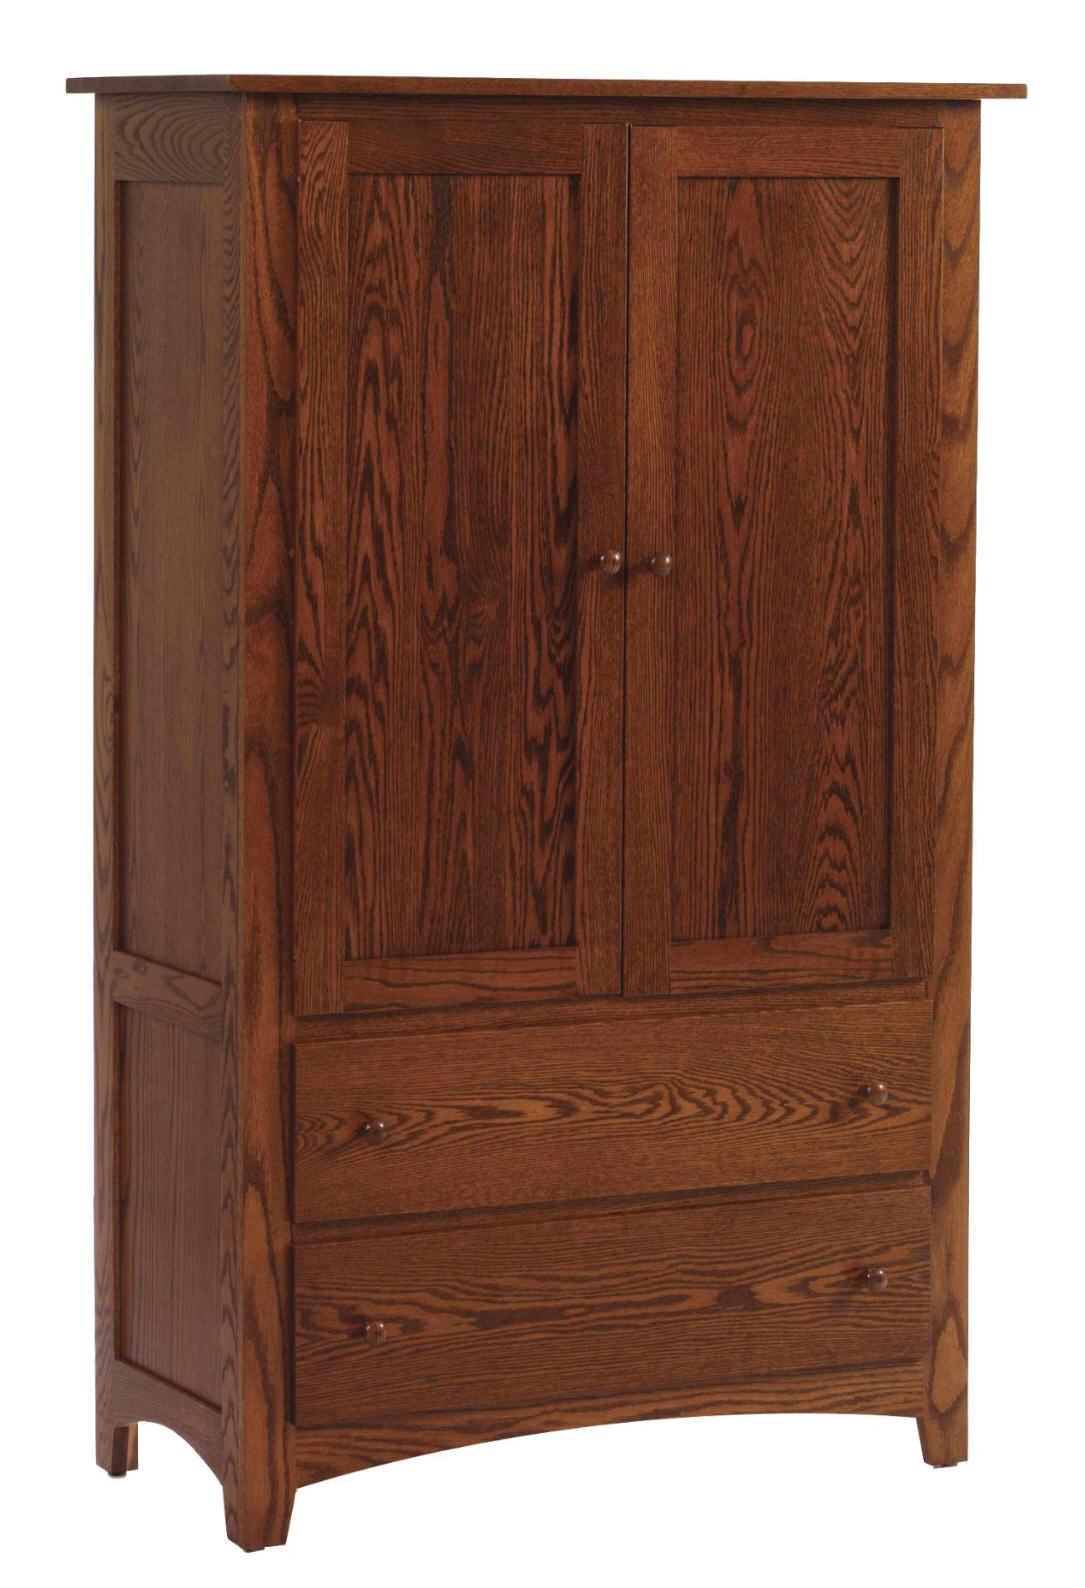 Elizabeth lockwood armoire 587 mf4040am 91 bedroom for Stone barn furnishings